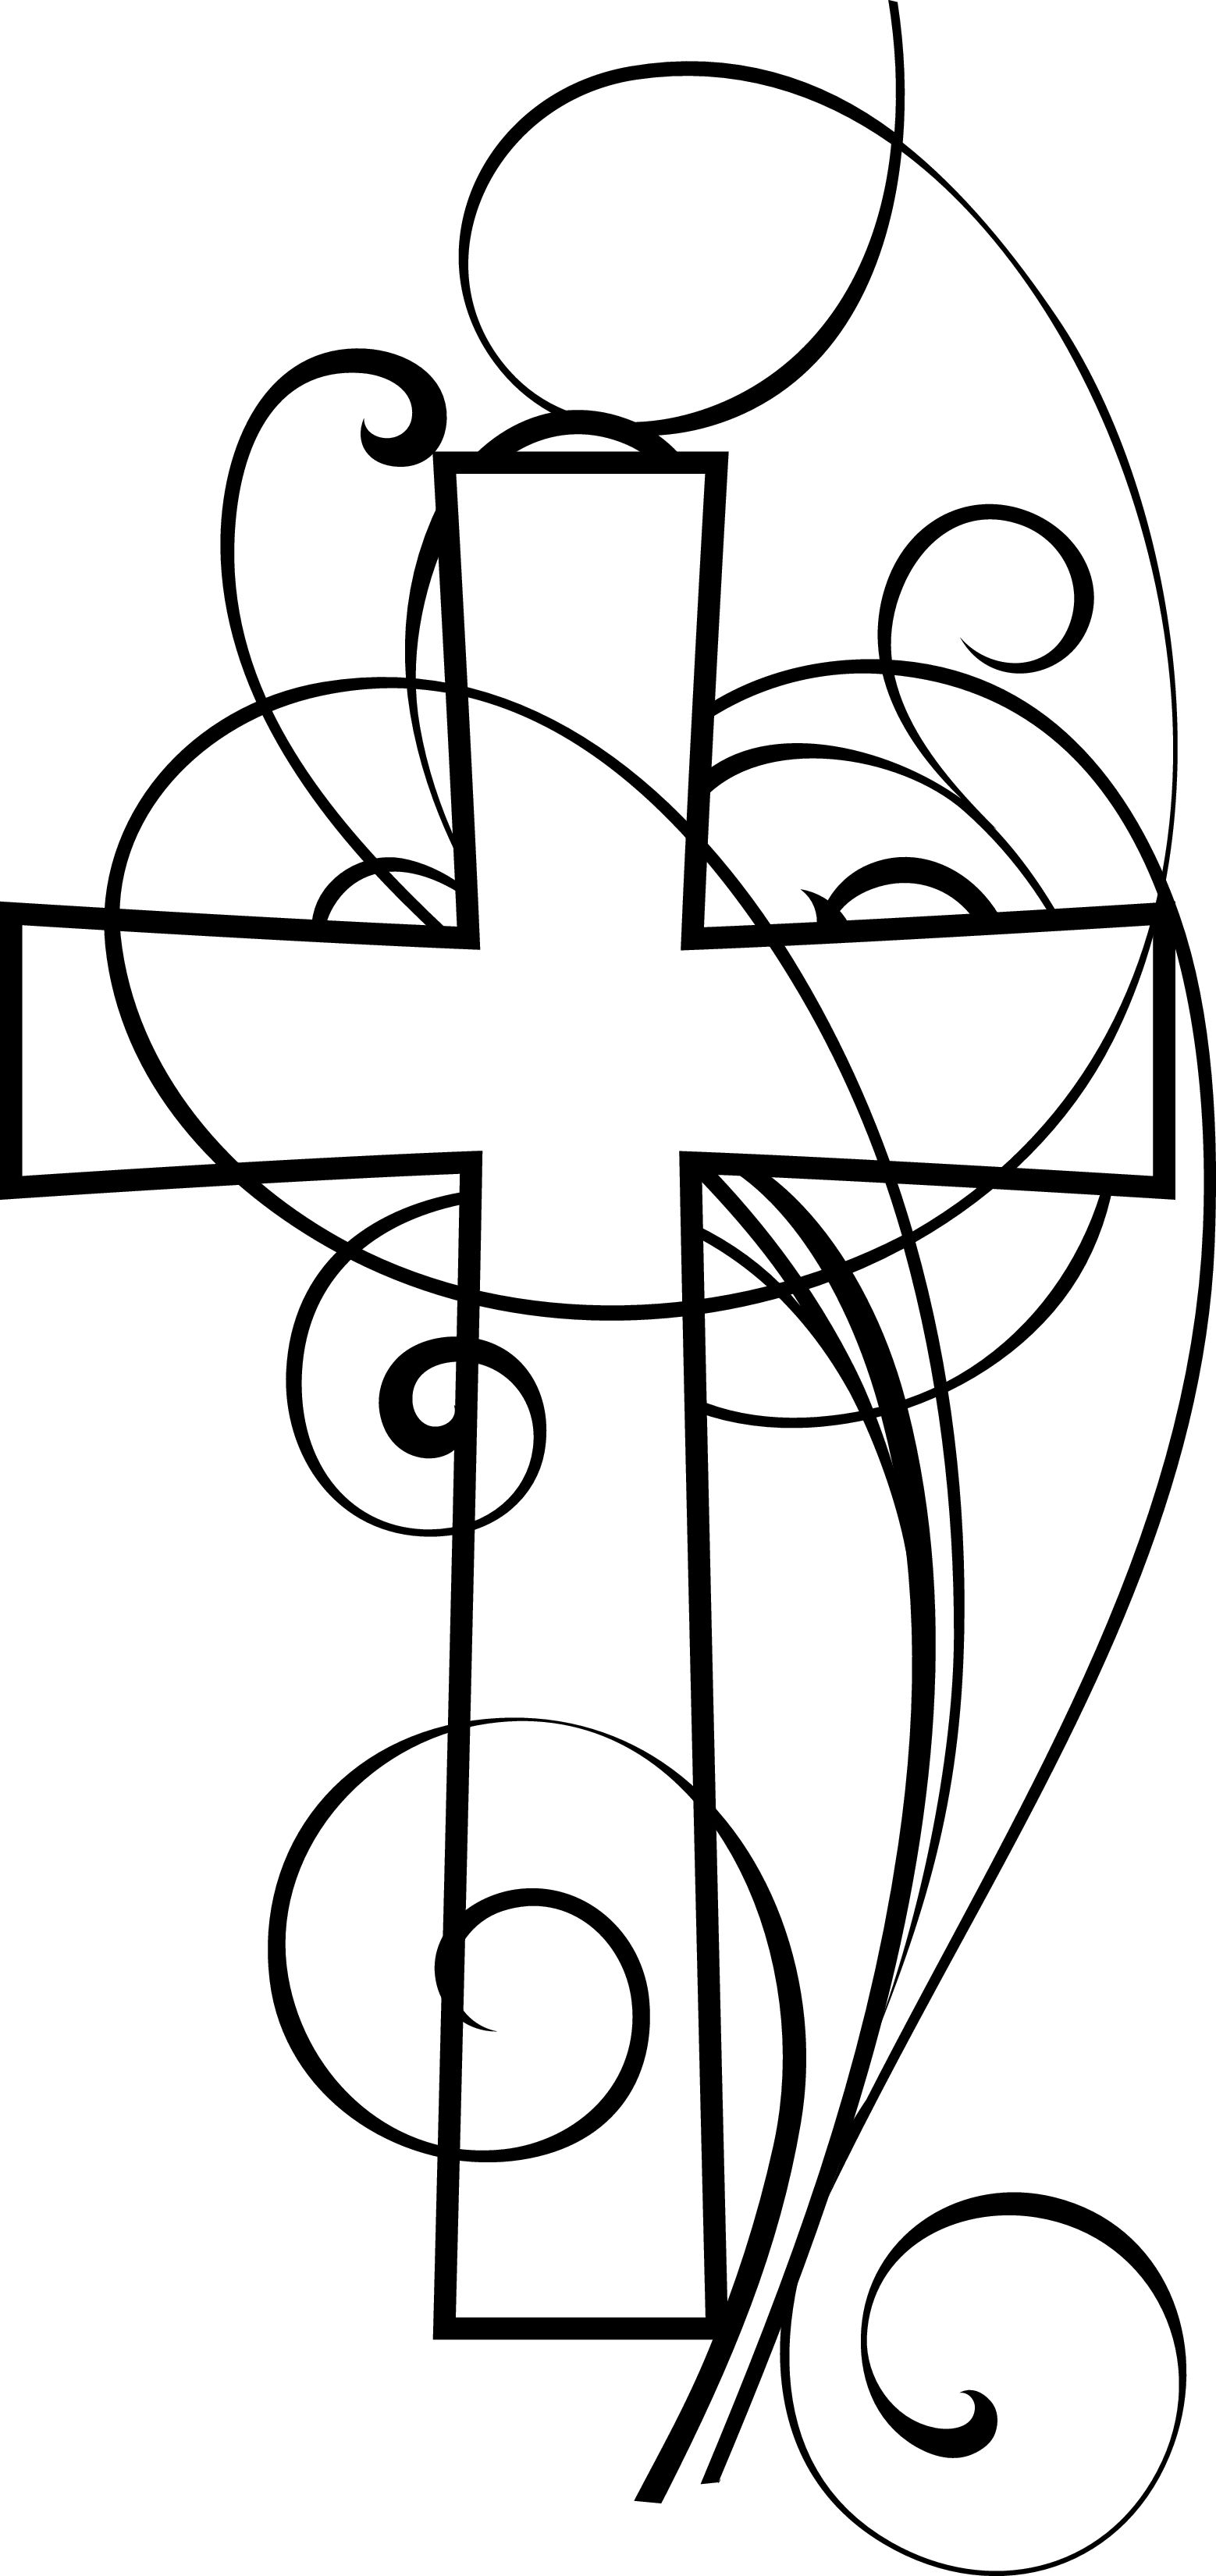 Cross google search bible. Drawing clipart art drawing png transparent library